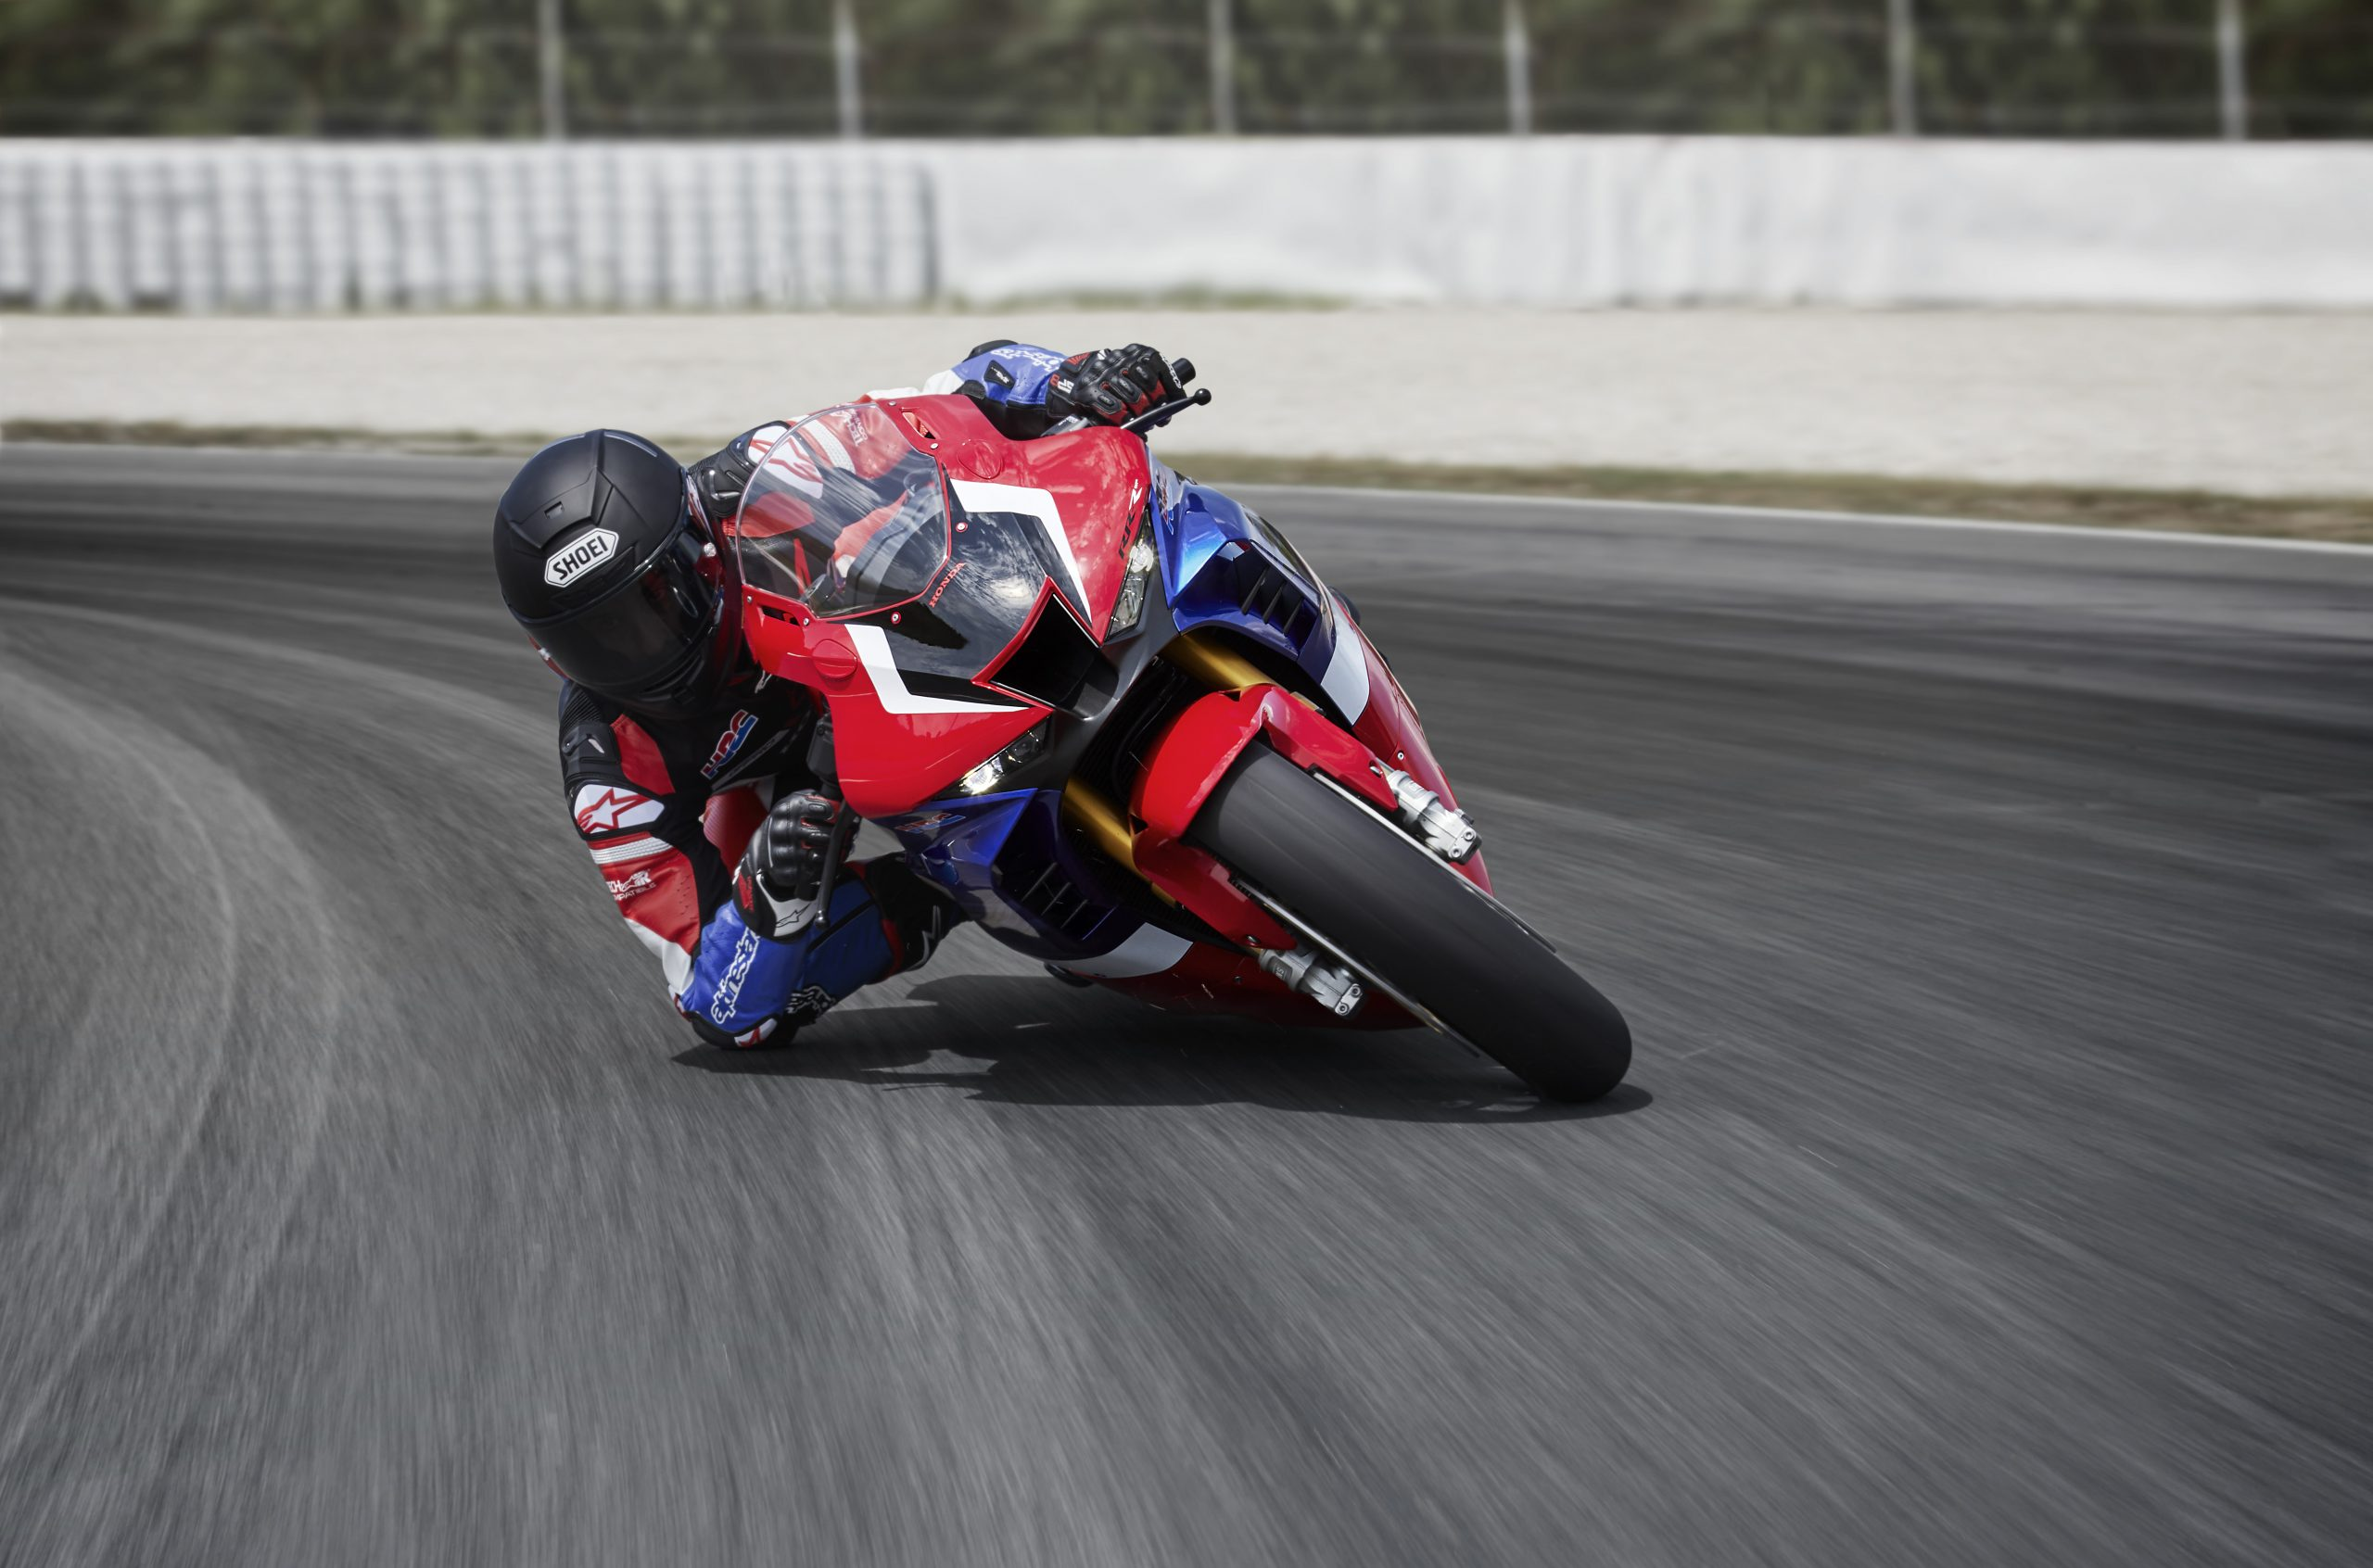 20YM_CBR1000RR-R_SP_Location_MARQUEZ_Riding_03_0648